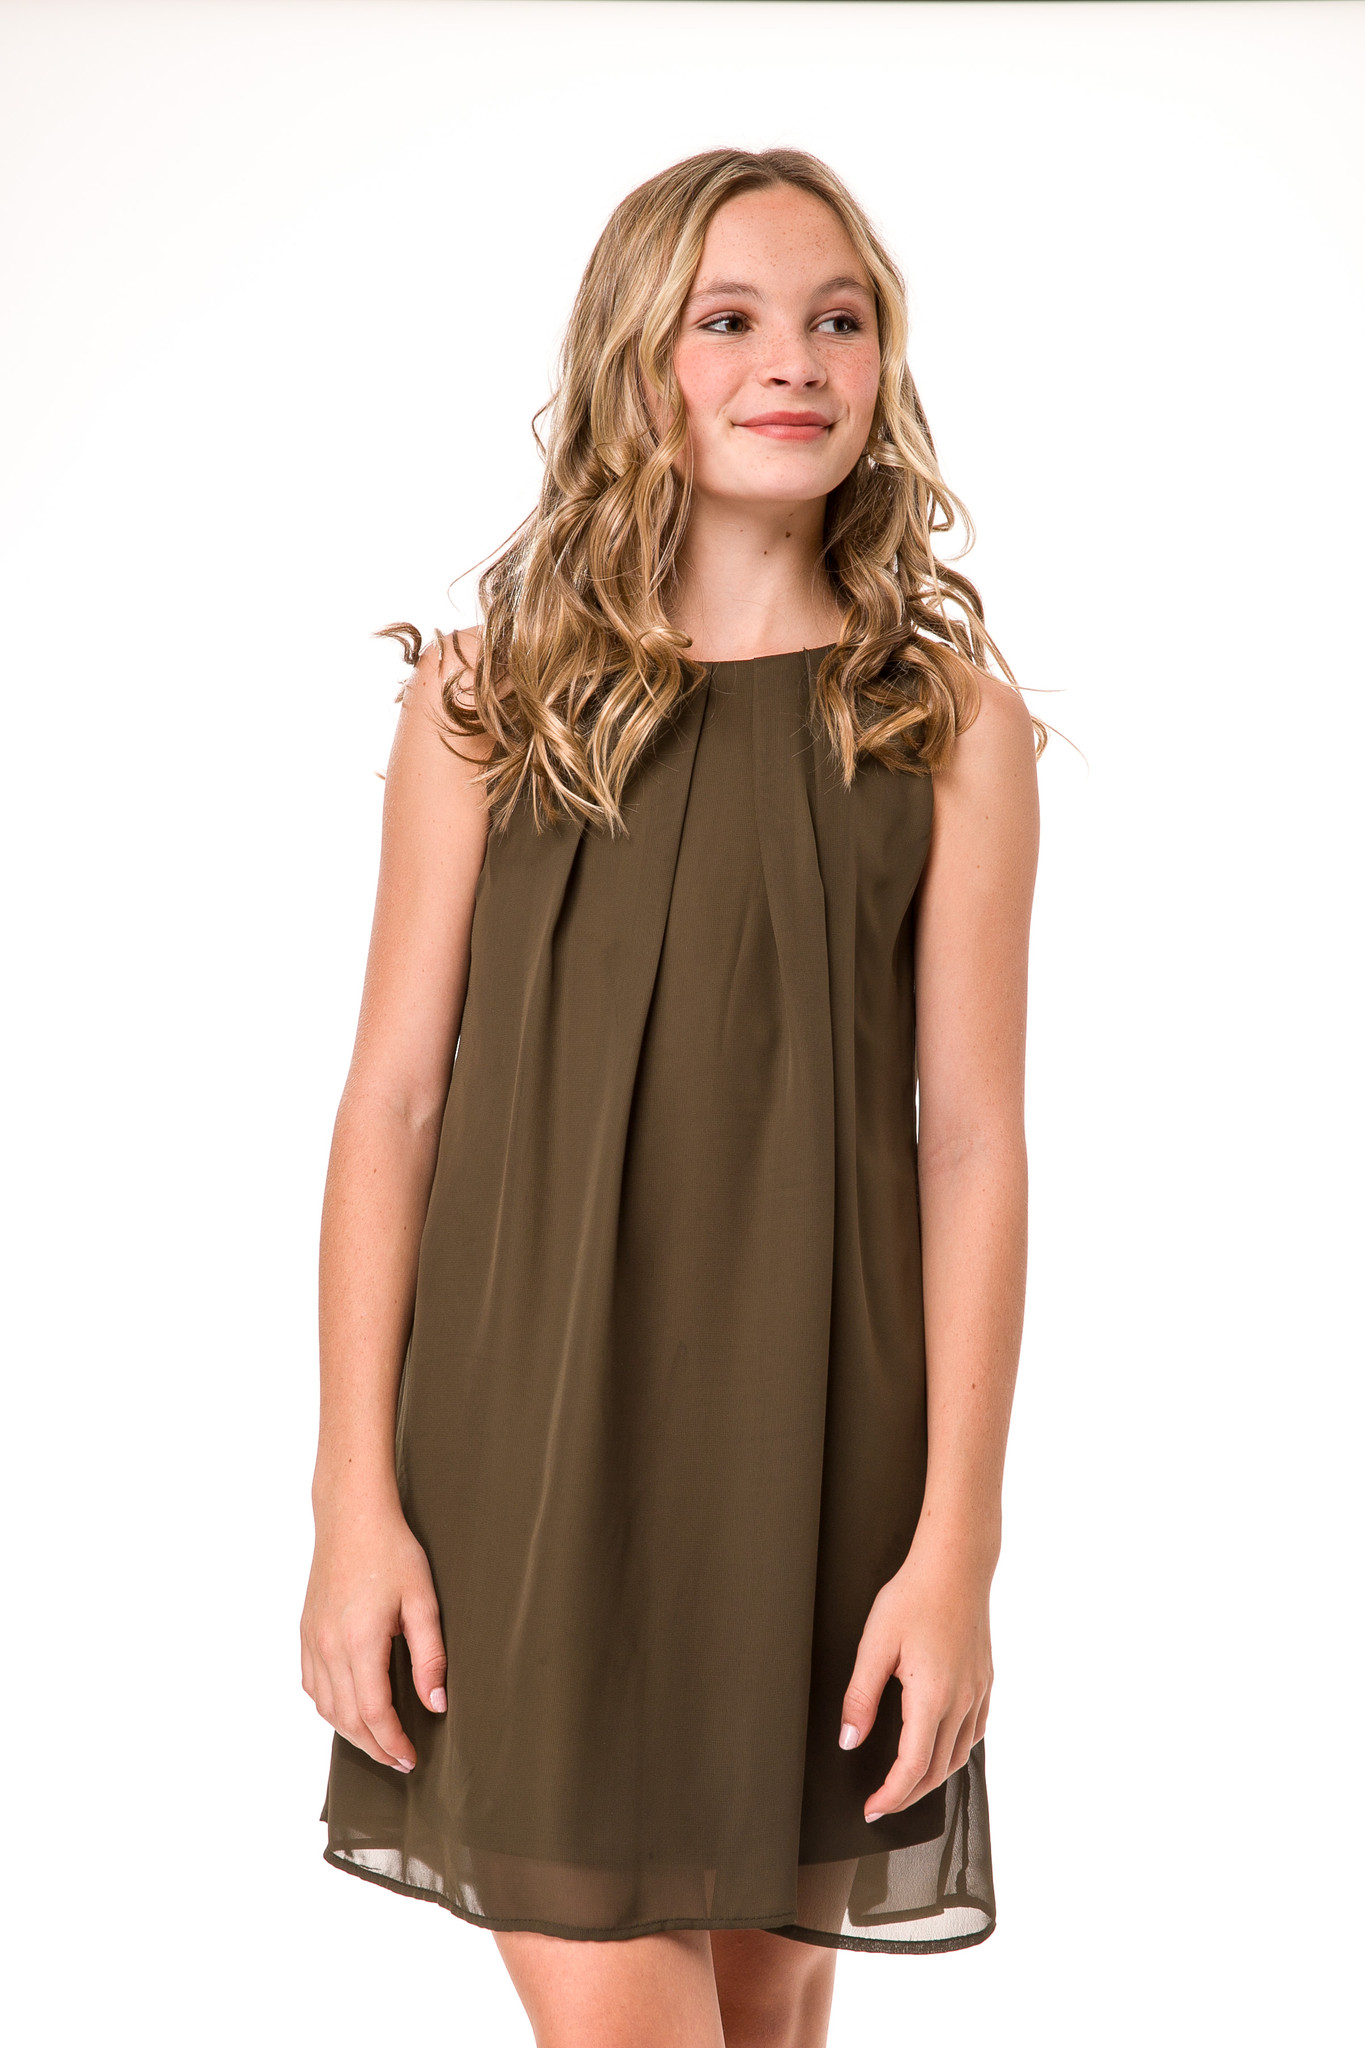 Tween Girls Chiffon A Line Dress in Olive Green close up view.